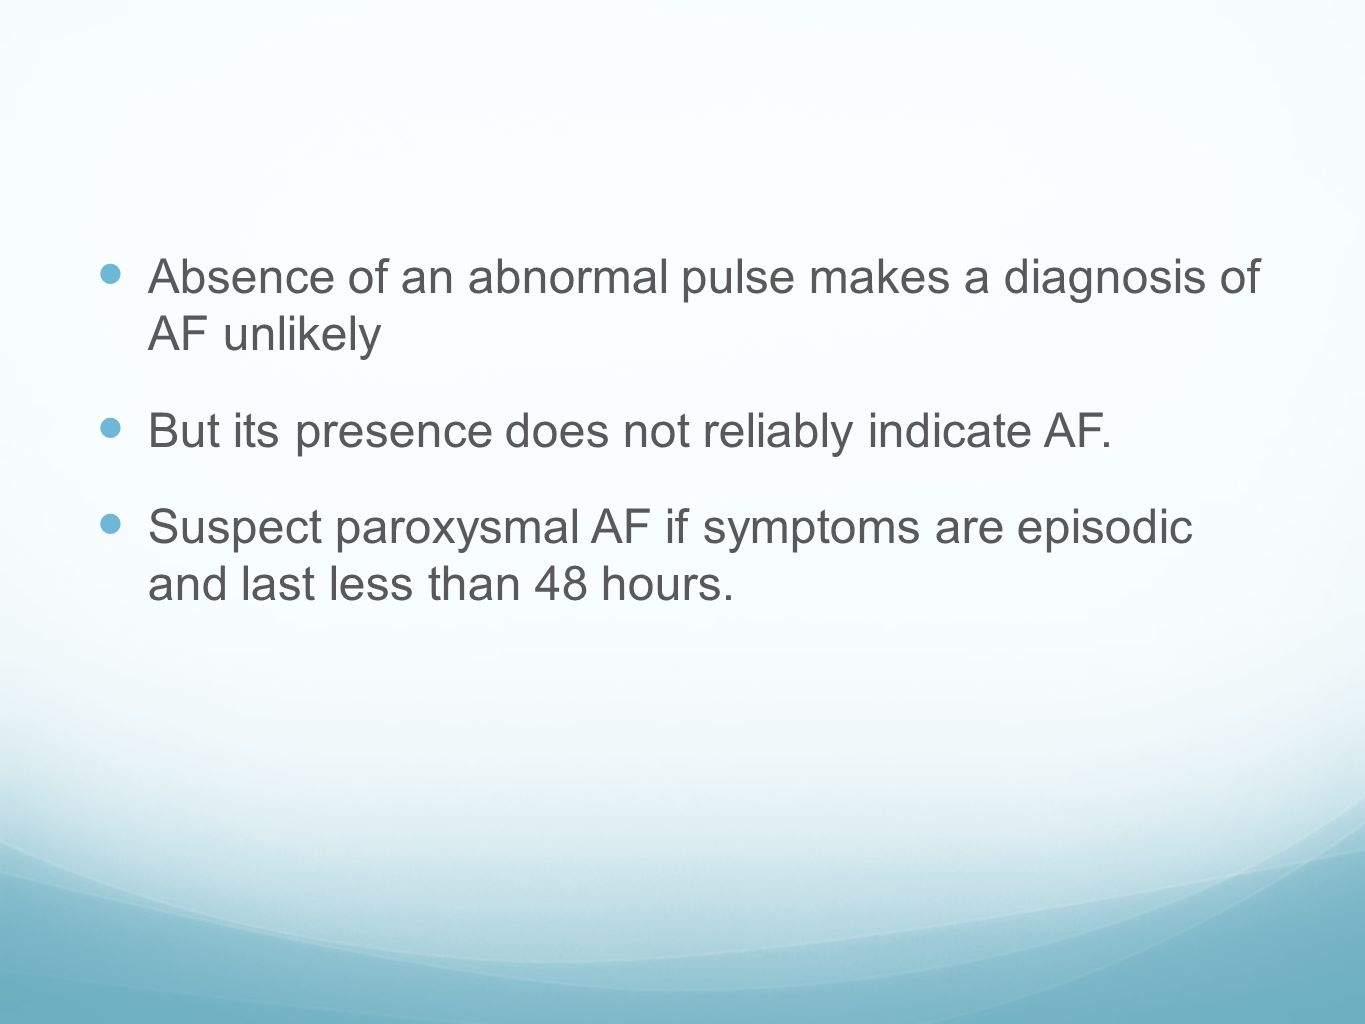 Absence of an abnormal pulse makes a diagnosis of AF unlikely